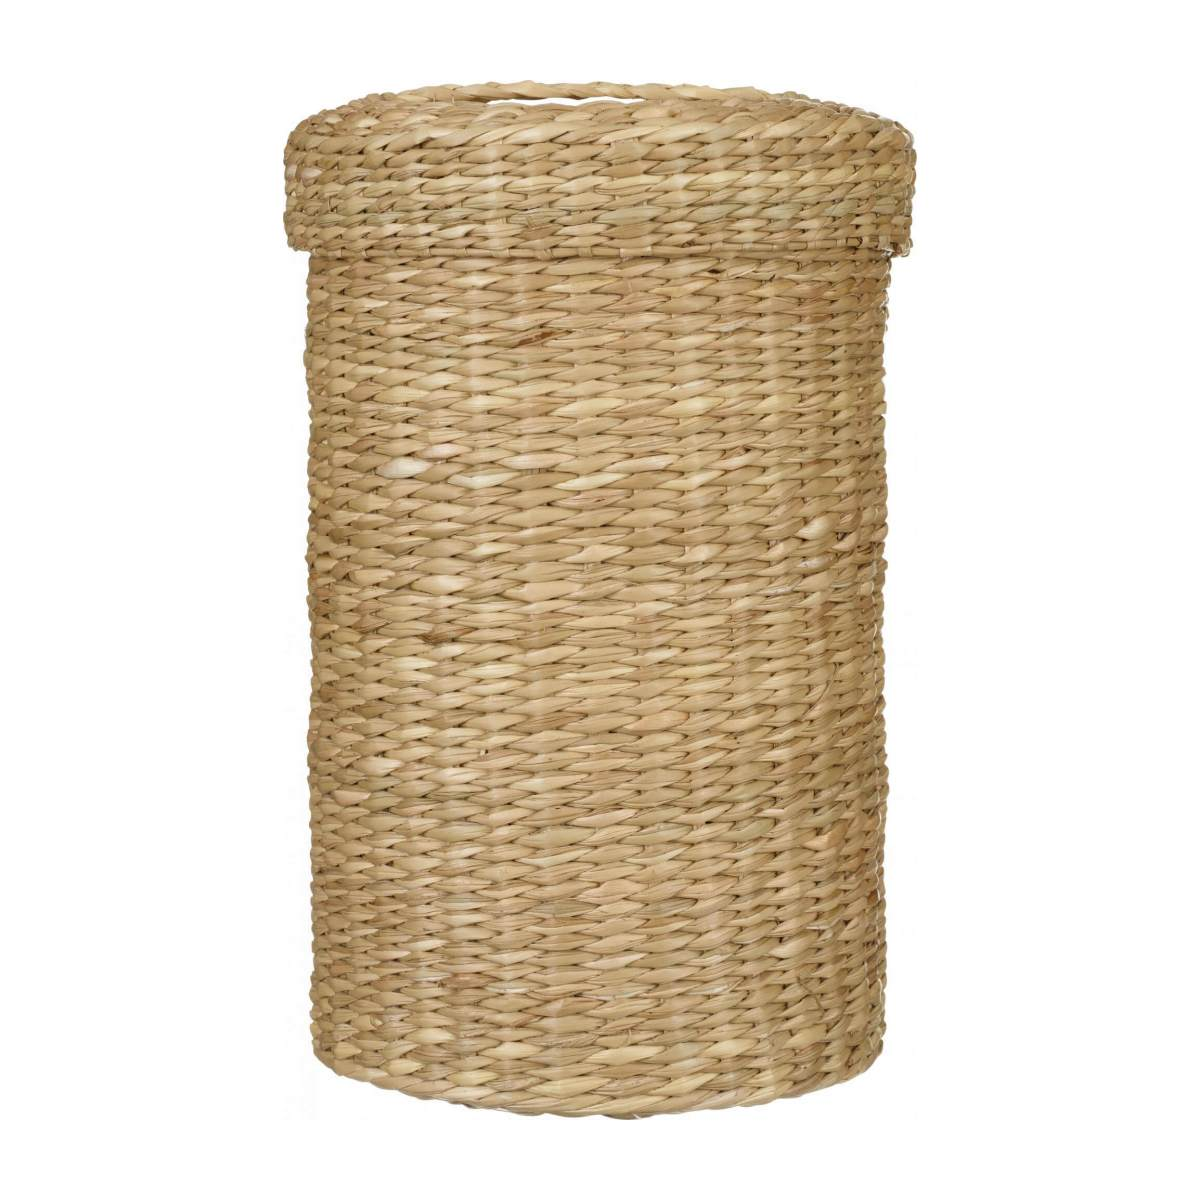 Seagrass Mini Baskets with lids n°2